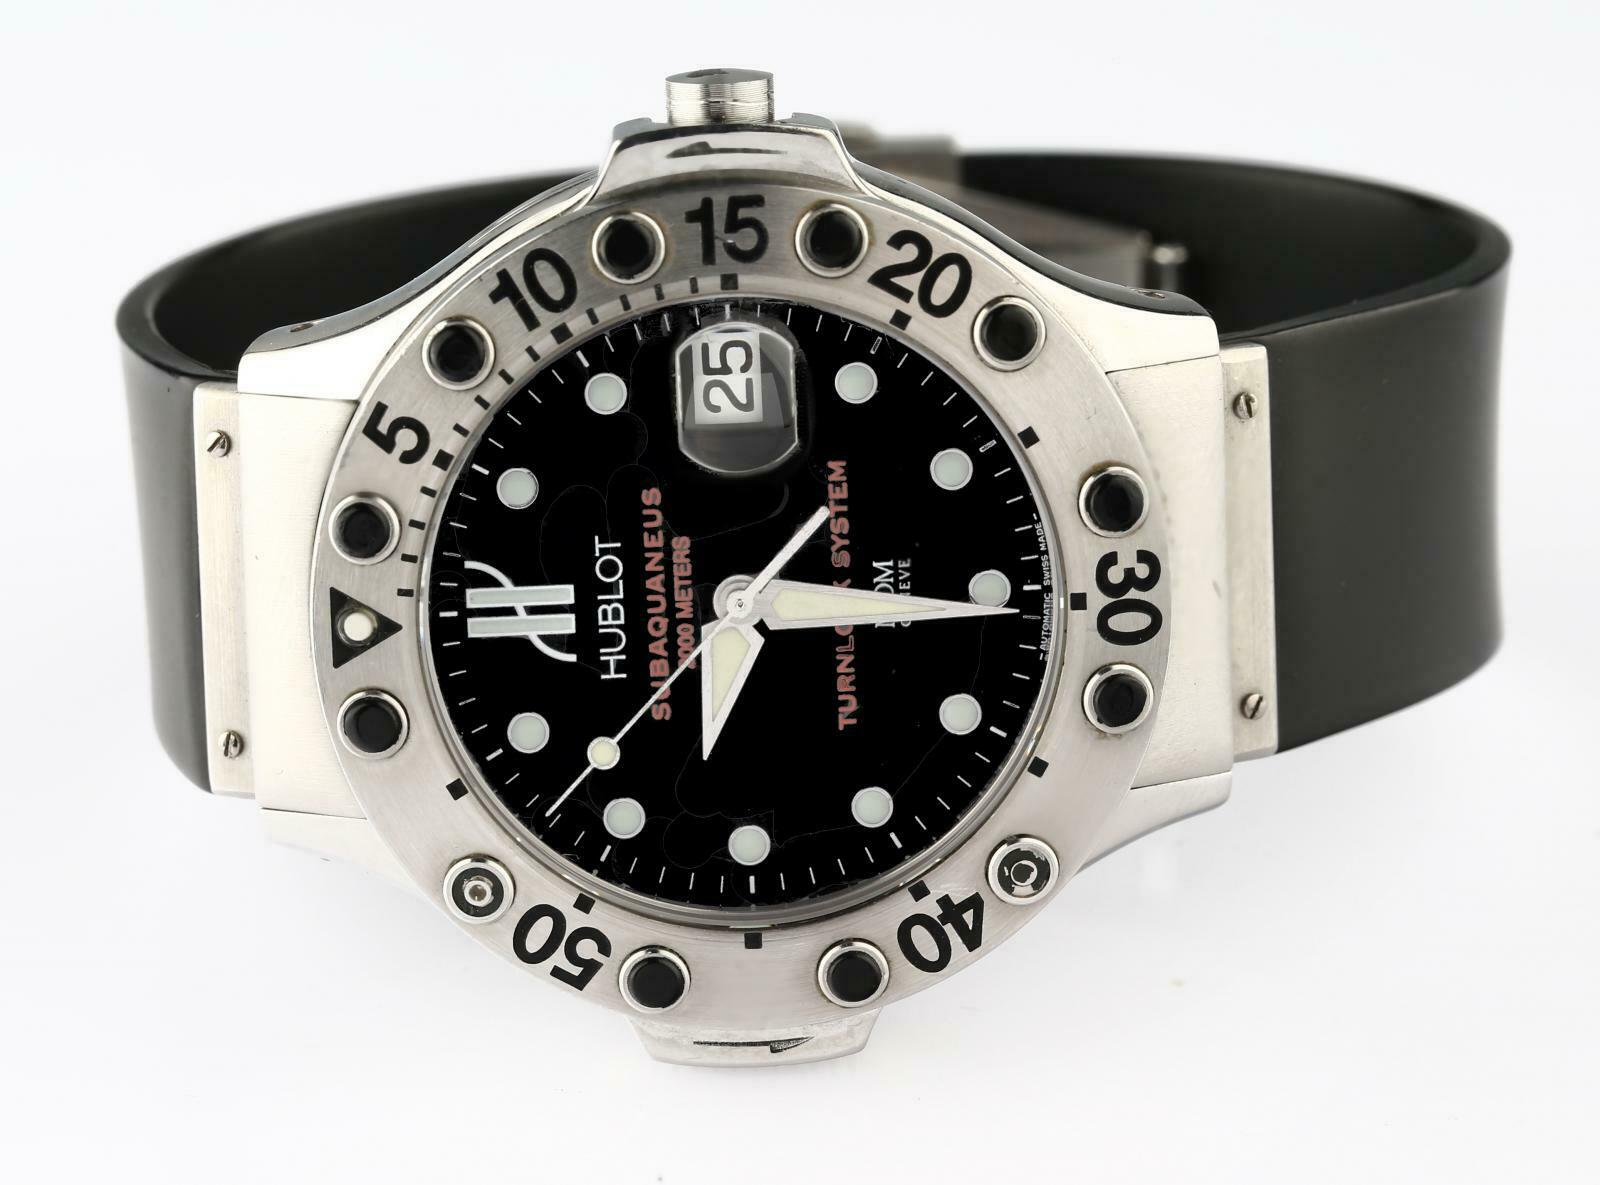 Hublot MDM Subaquaneus Turnblock Ref#1950.1 Automatic Stainless Steel Wristwatch - watch picture 1